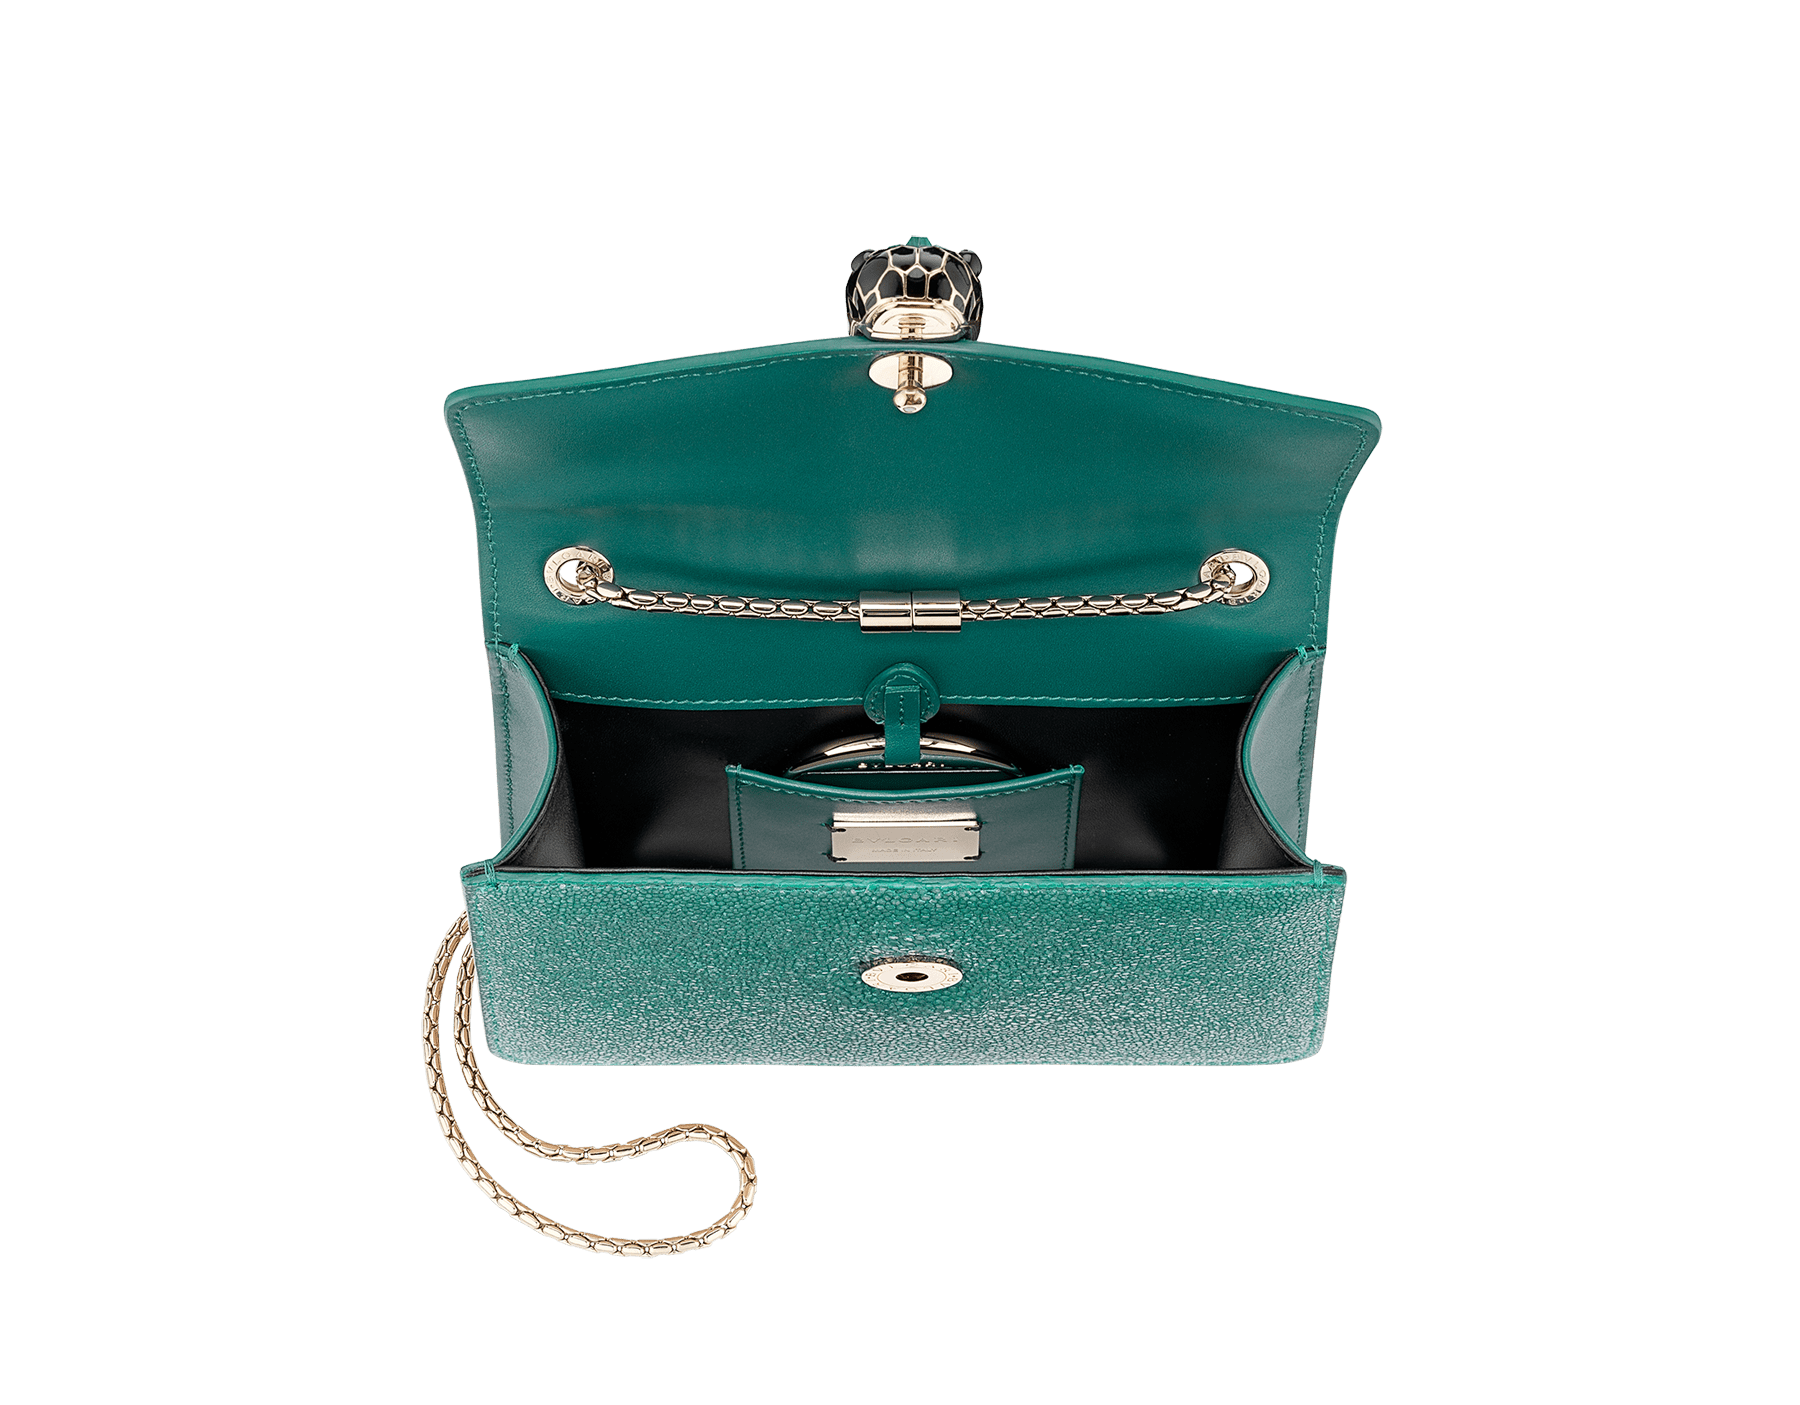 """Serpenti Forever"" crossbody bag in emerald green galuchat skin. Iconic snake head closure in light gold plated brass enriched with black enamel, malachite scales and black onyx eyes. 289021 image 4"